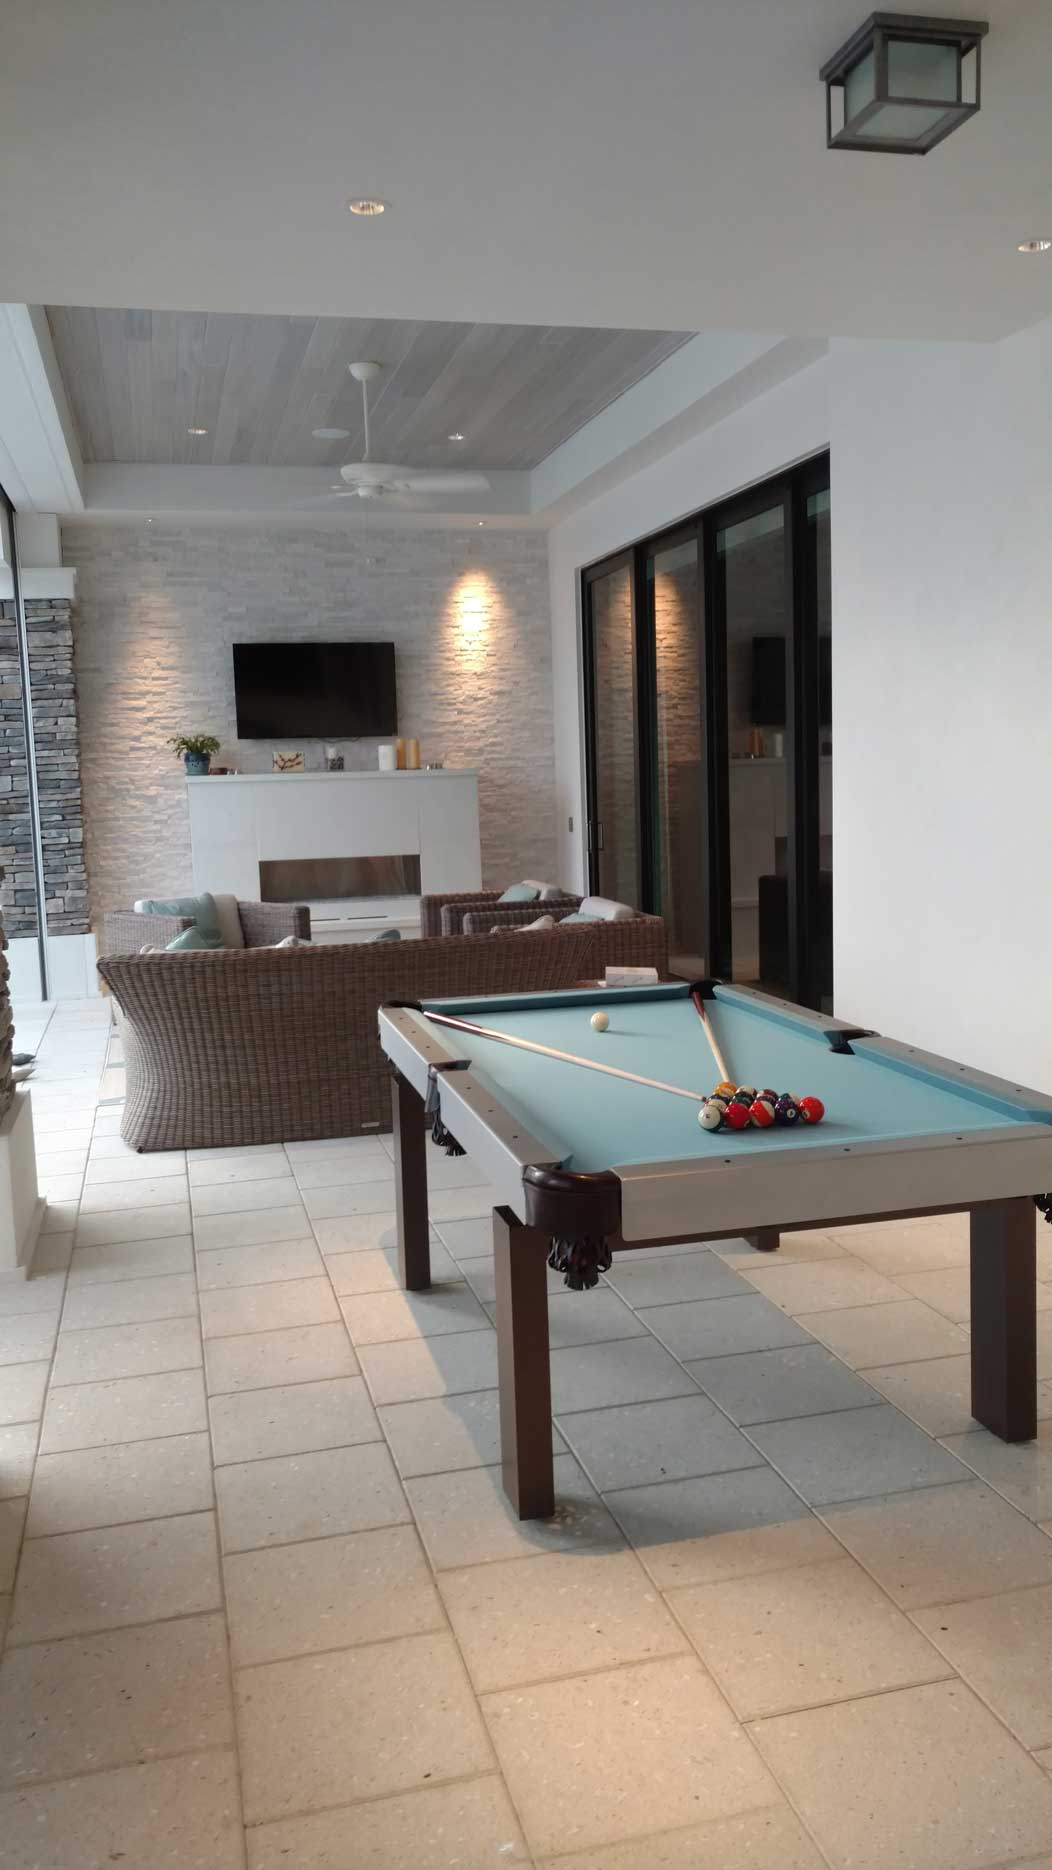 Oasis outdoor pool table by R&R Outdoors All Weather Billiards